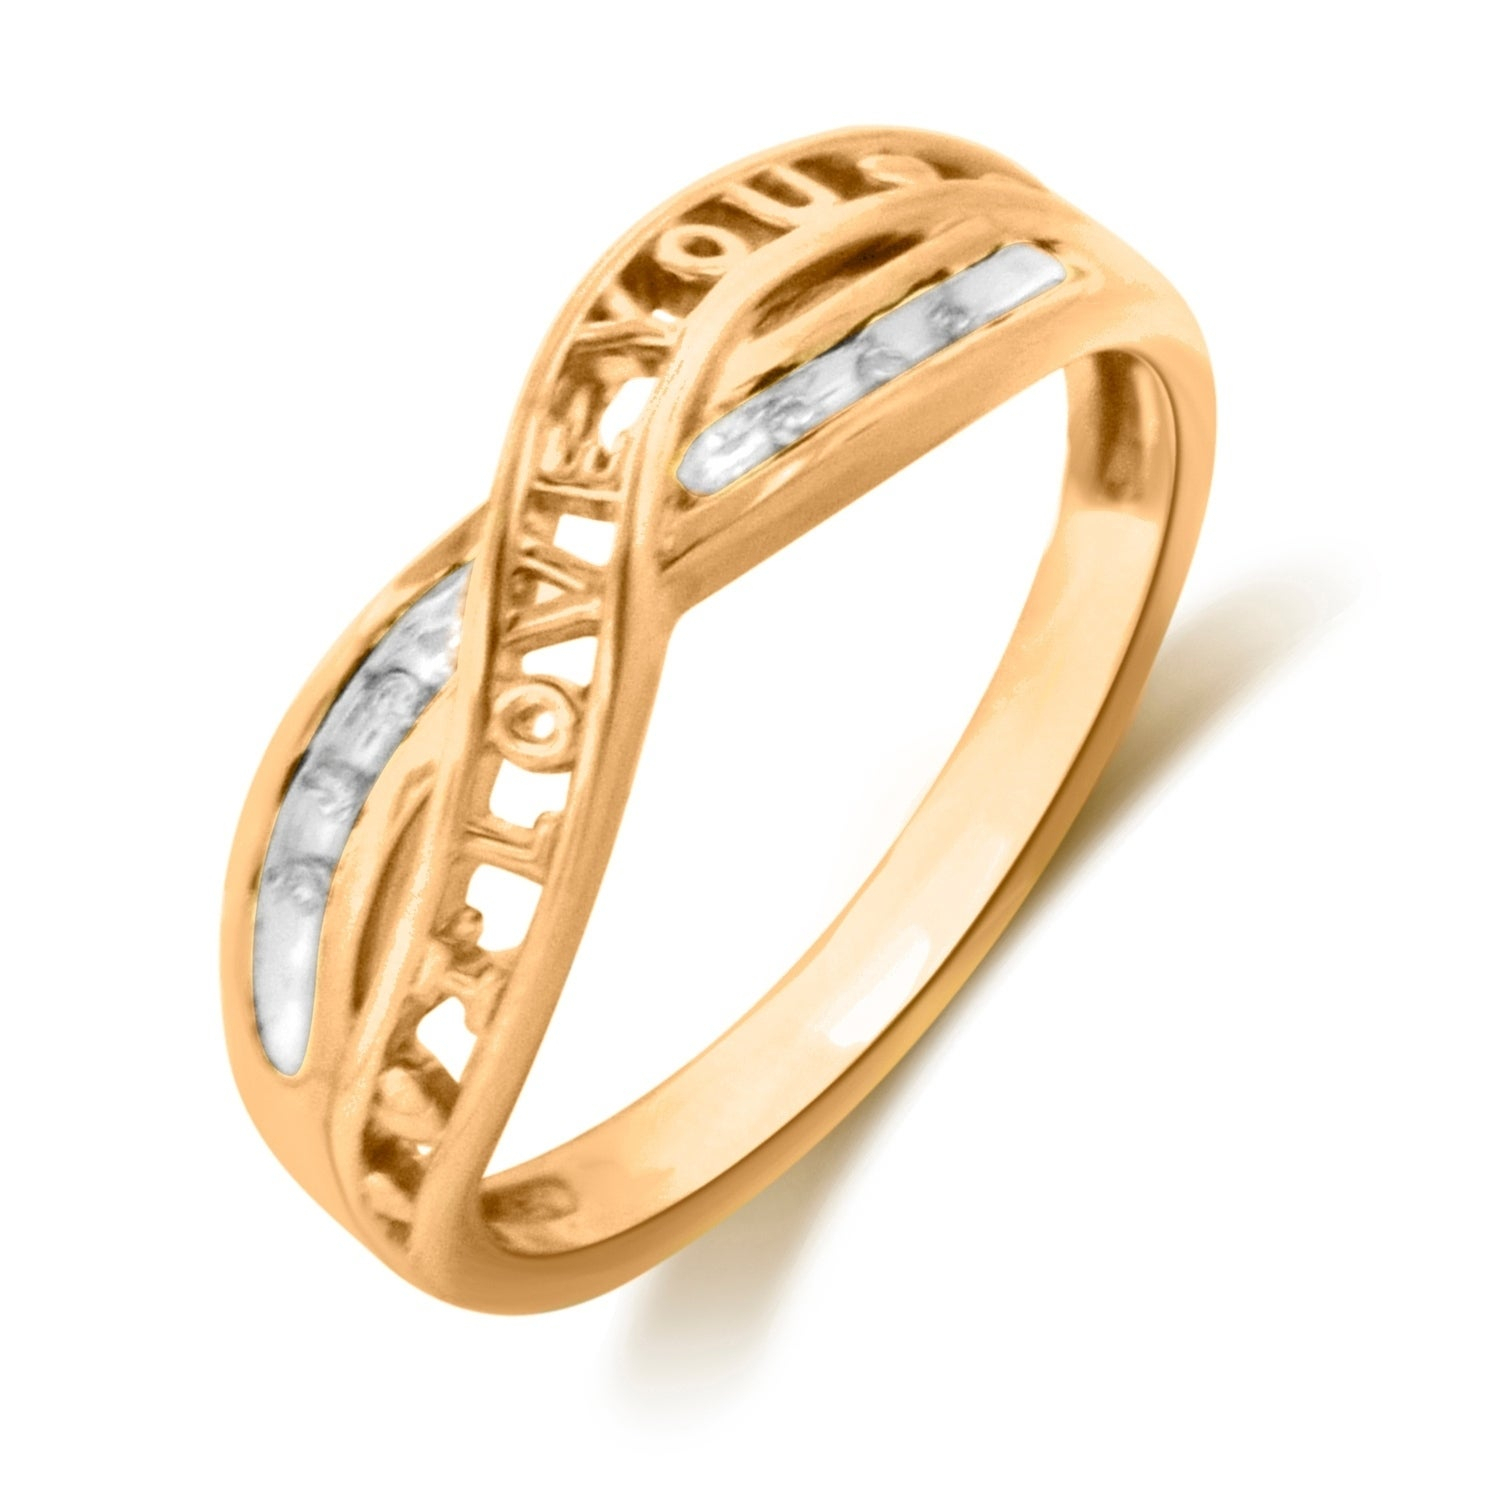 Sterling Silver With Yellow Gold Plate Diamond Accent Anniversary Ring With Recent Diamond Accent Anniversary Bands In Gold (View 6 of 25)